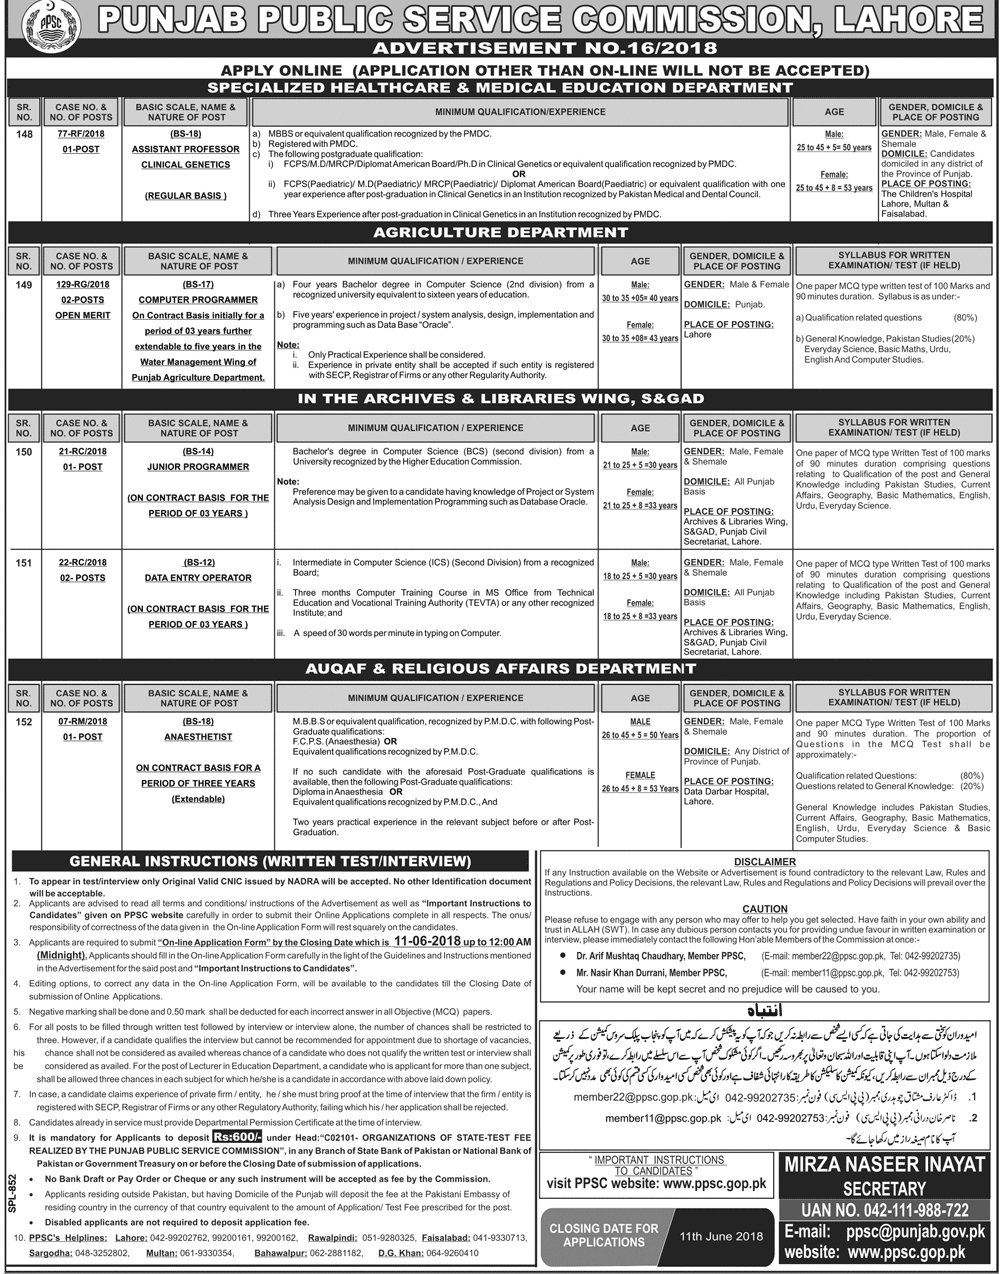 PPSC Jobs 2018 May Advertisement Today Medical Vacancies, Data Entry, Computer Programmer